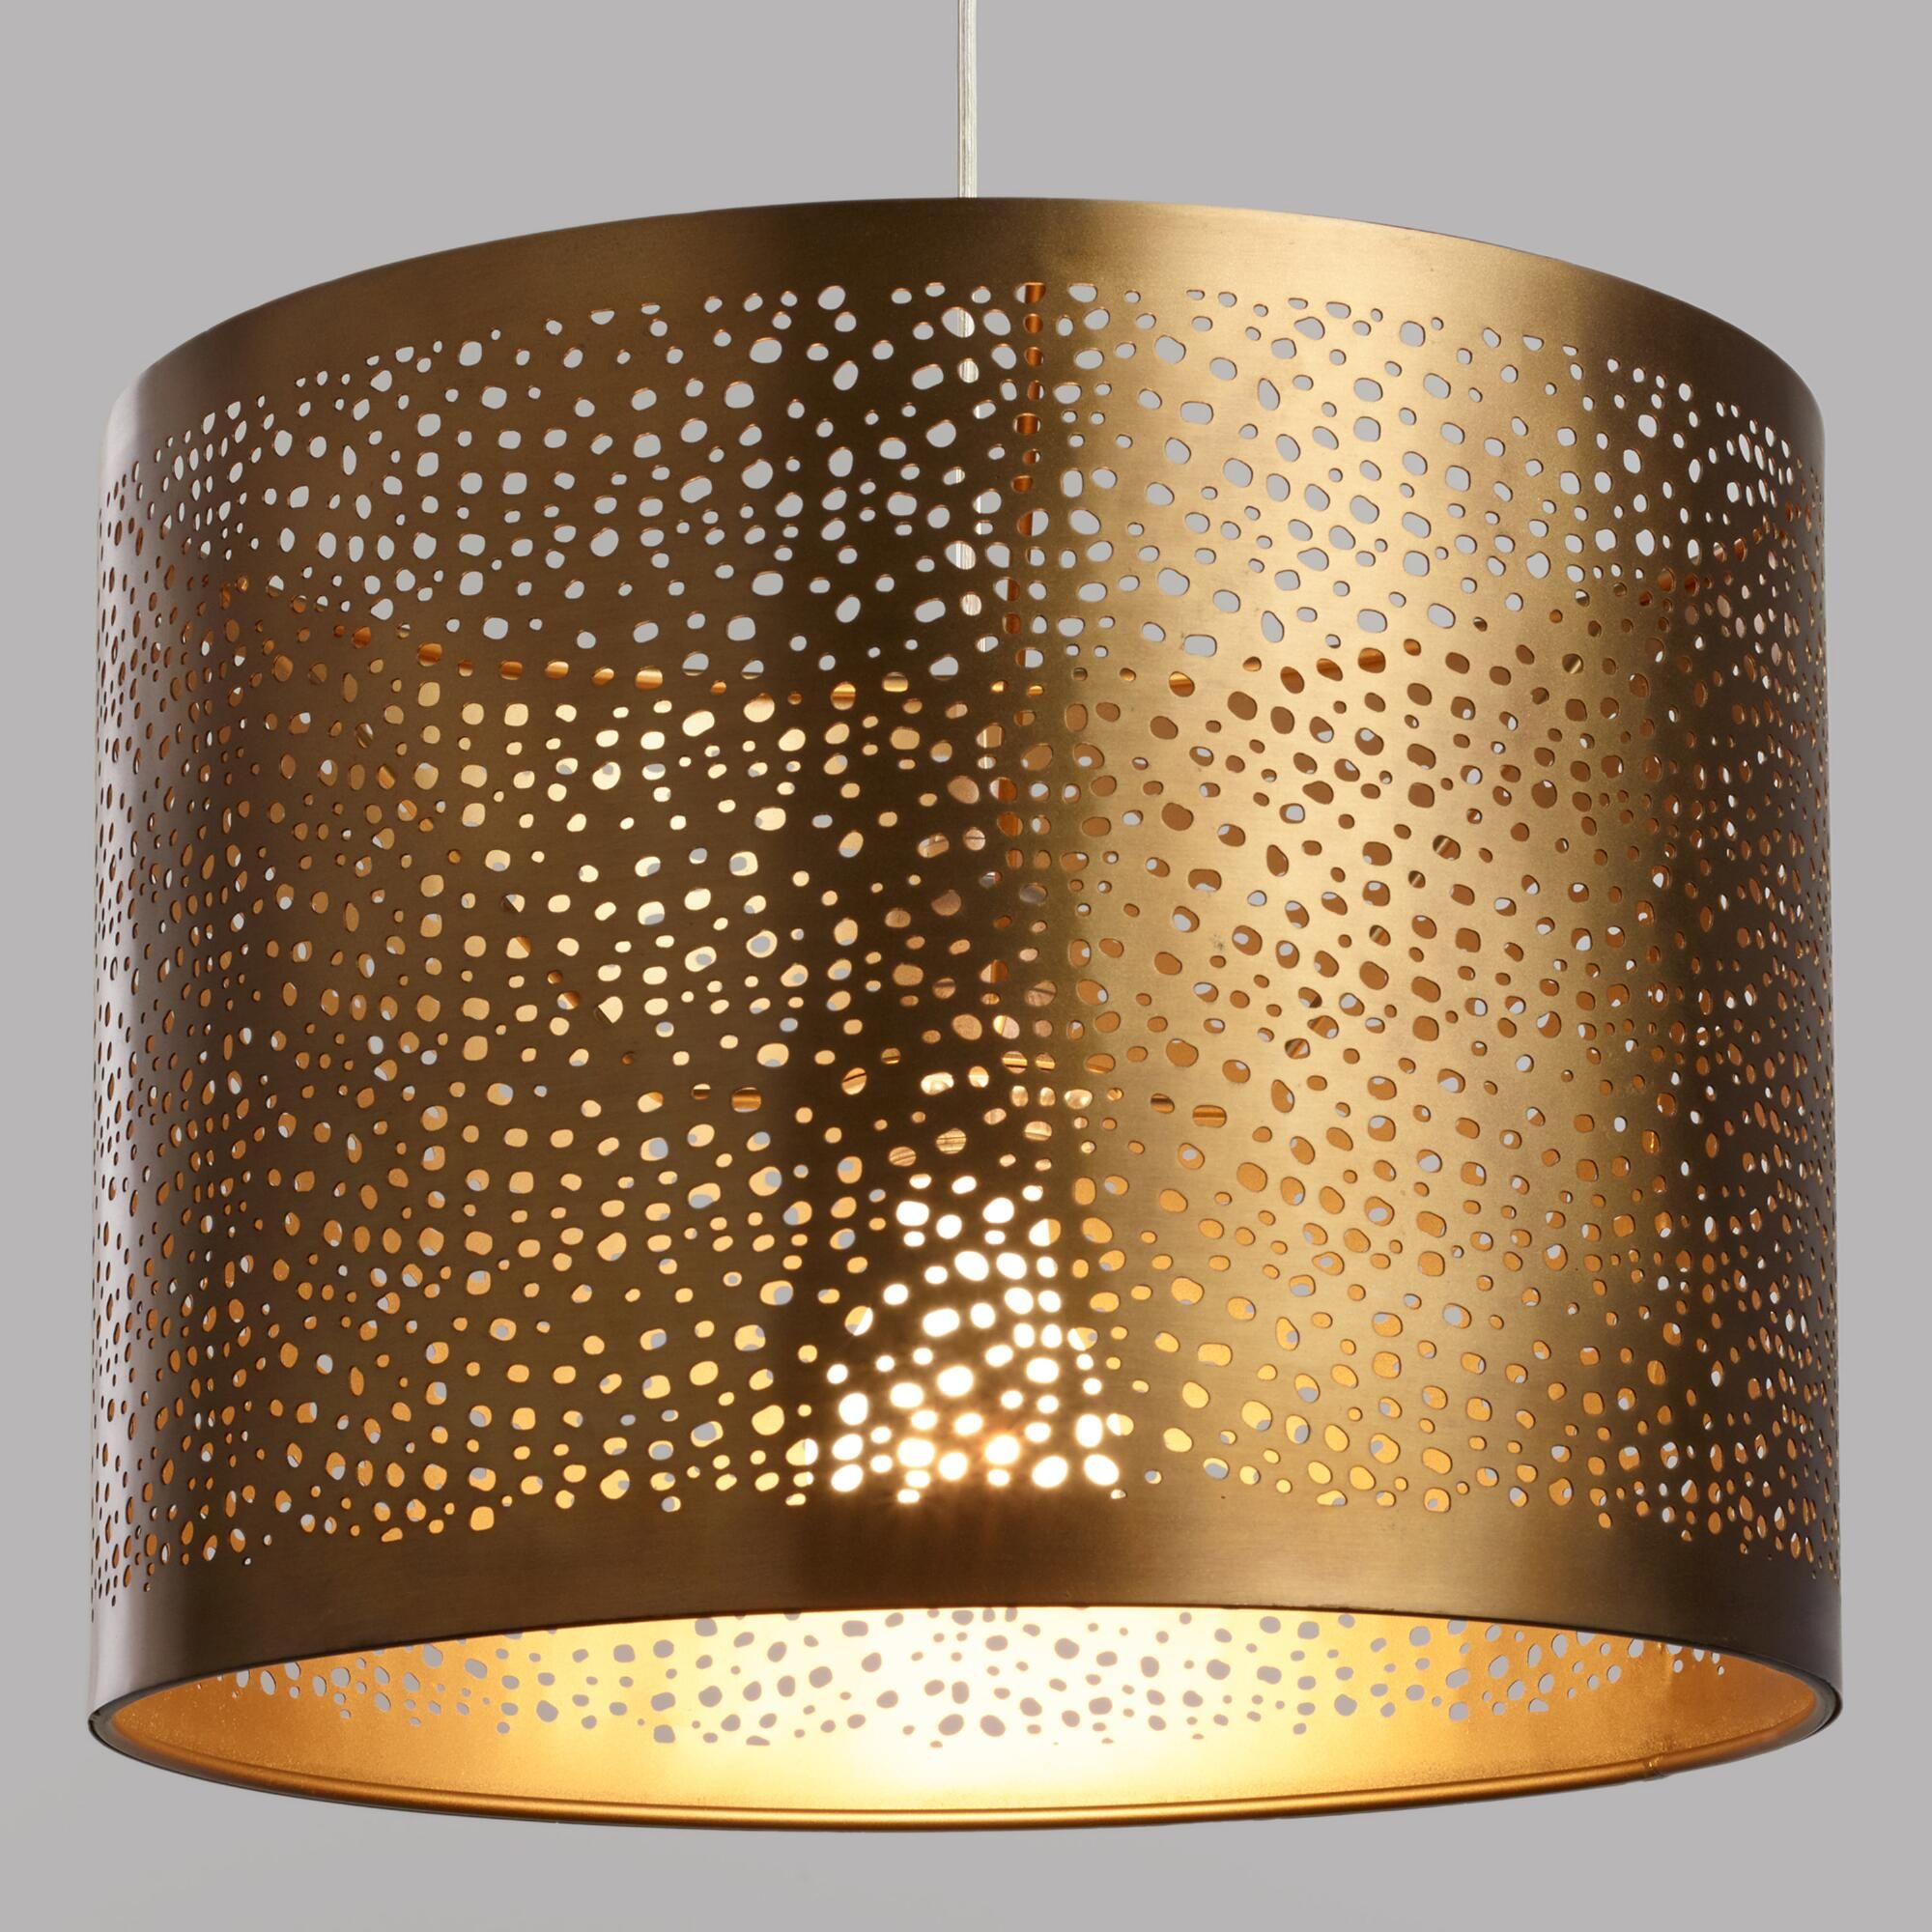 Pierced Antique Brass Drum Table Lamp Shade By World